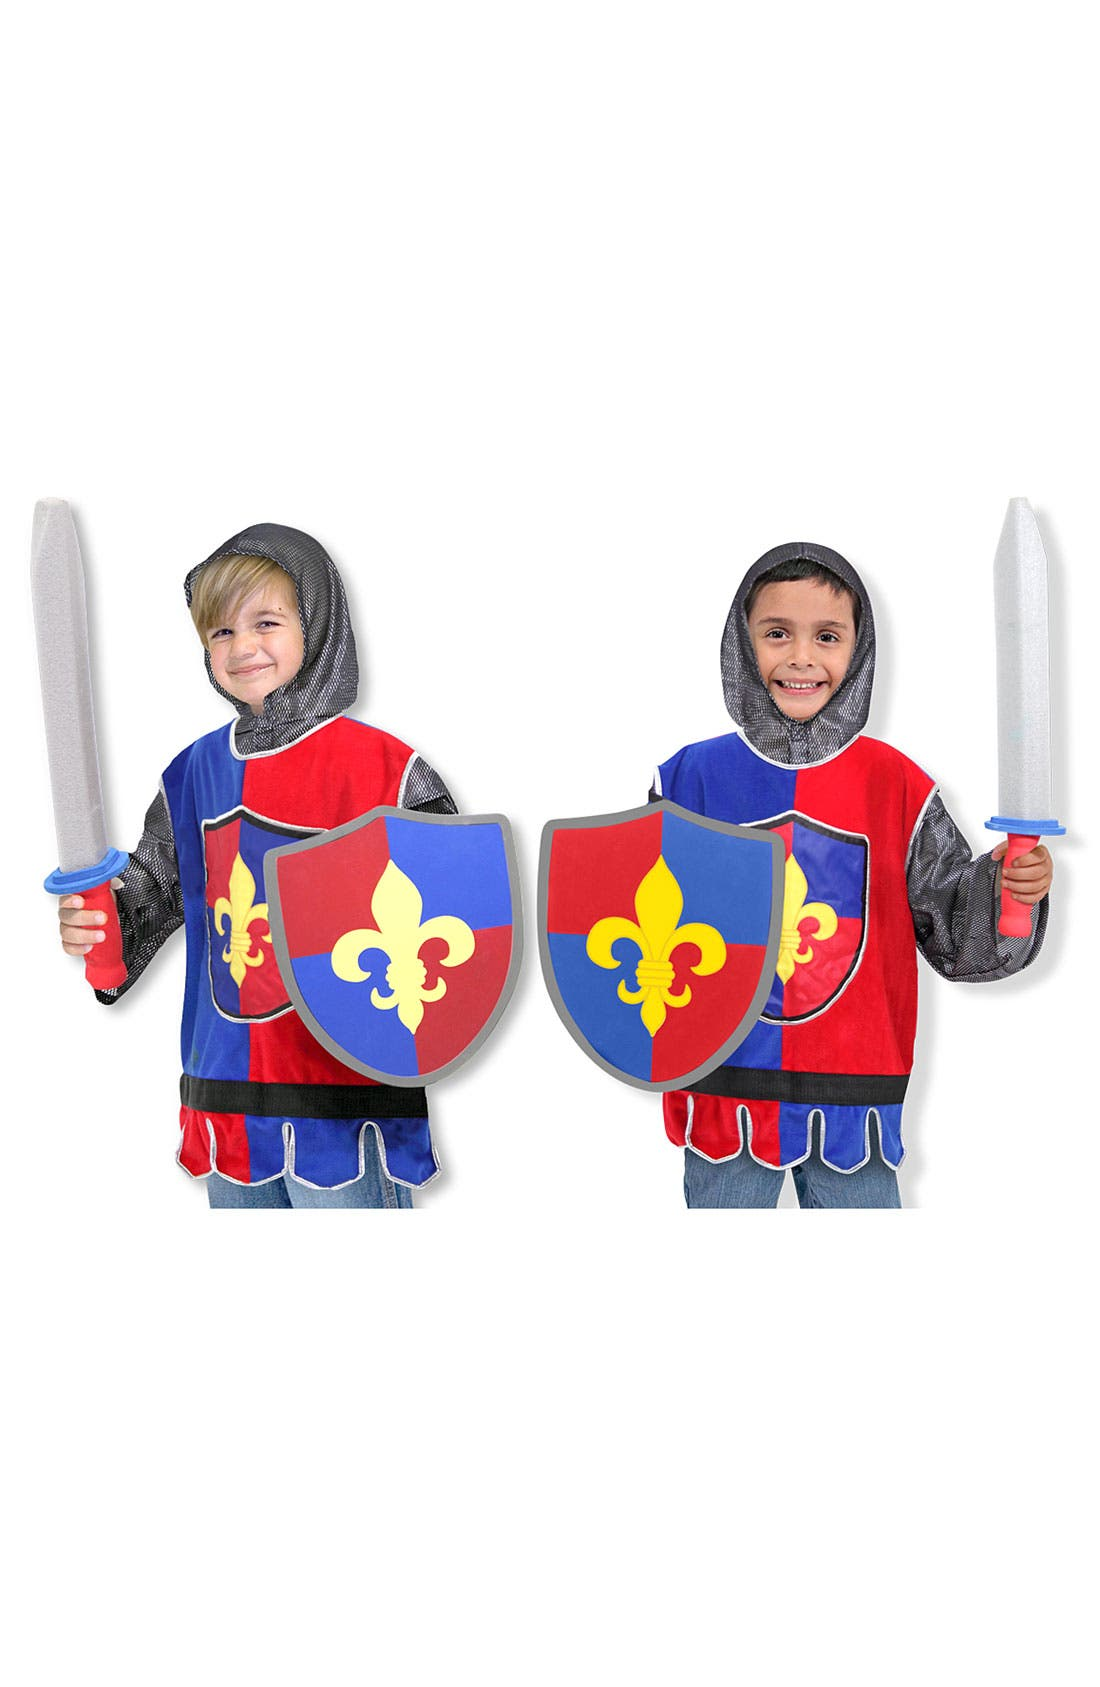 MELISSA & DOUG 'Knight' Costume